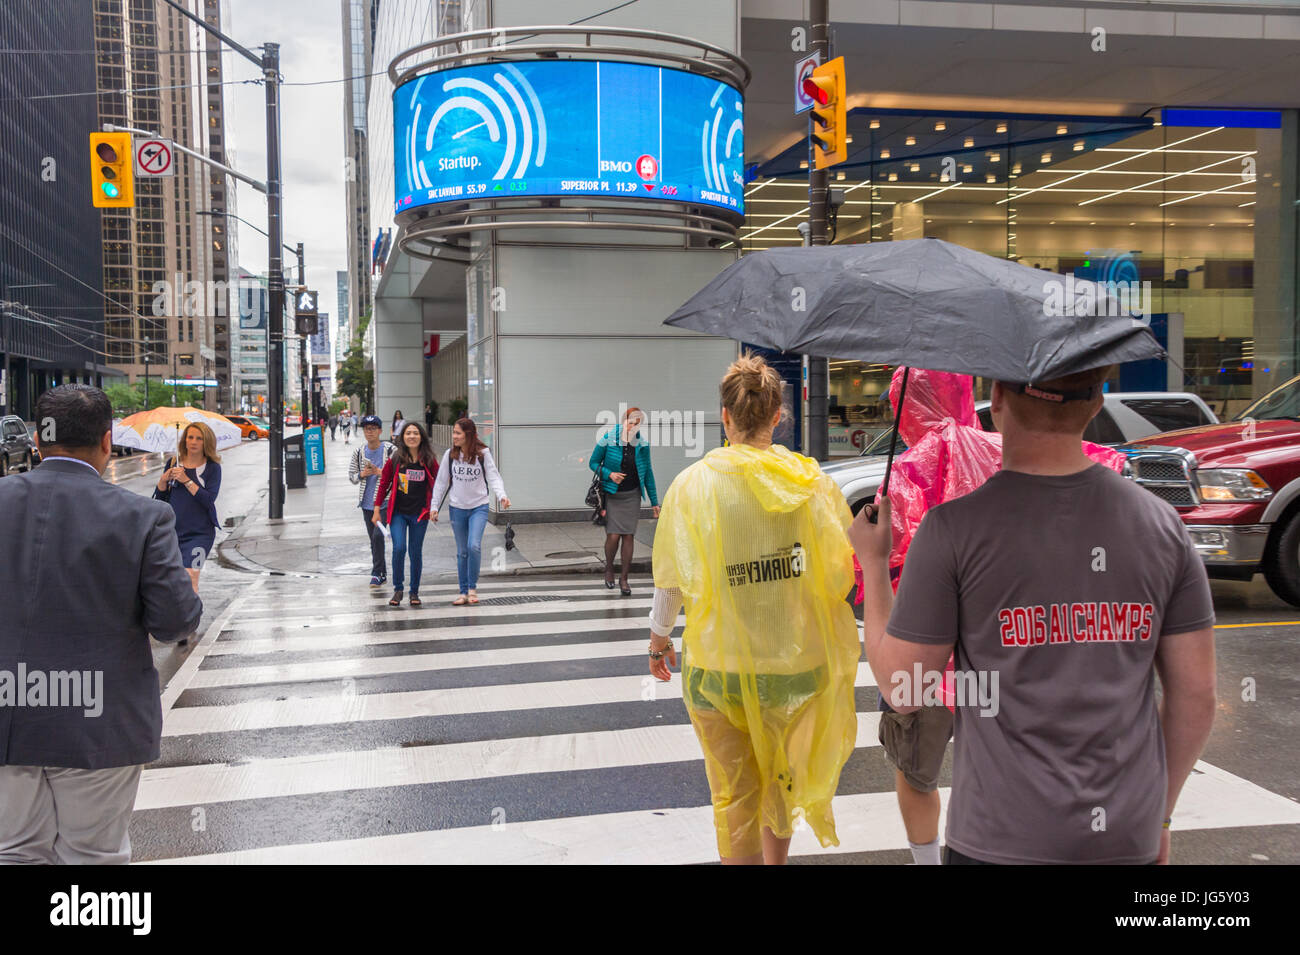 Toronto, Canada - 26 June 2017: Crowd of people with umbrellas and rain ponchos on a rainy day Stock Photo